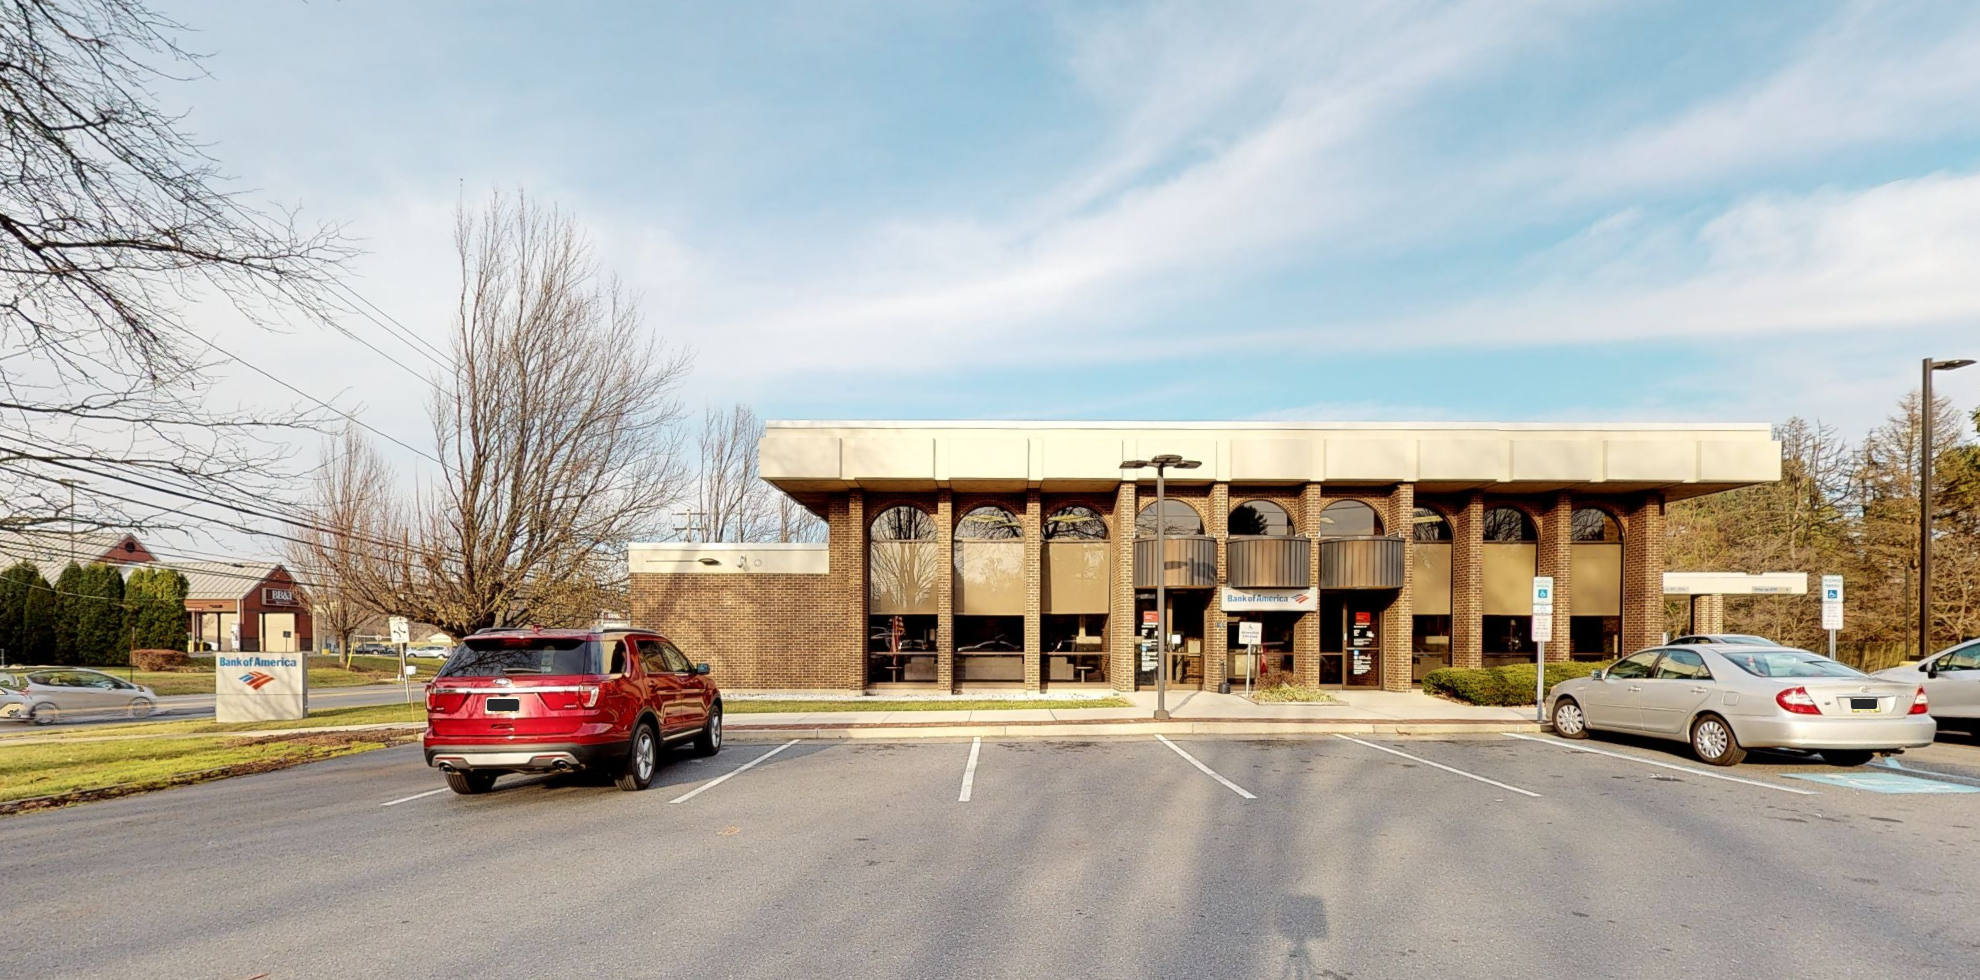 Bank of America financial center with drive-thru ATM   1107 Butztown Rd, Bethlehem, PA 18017